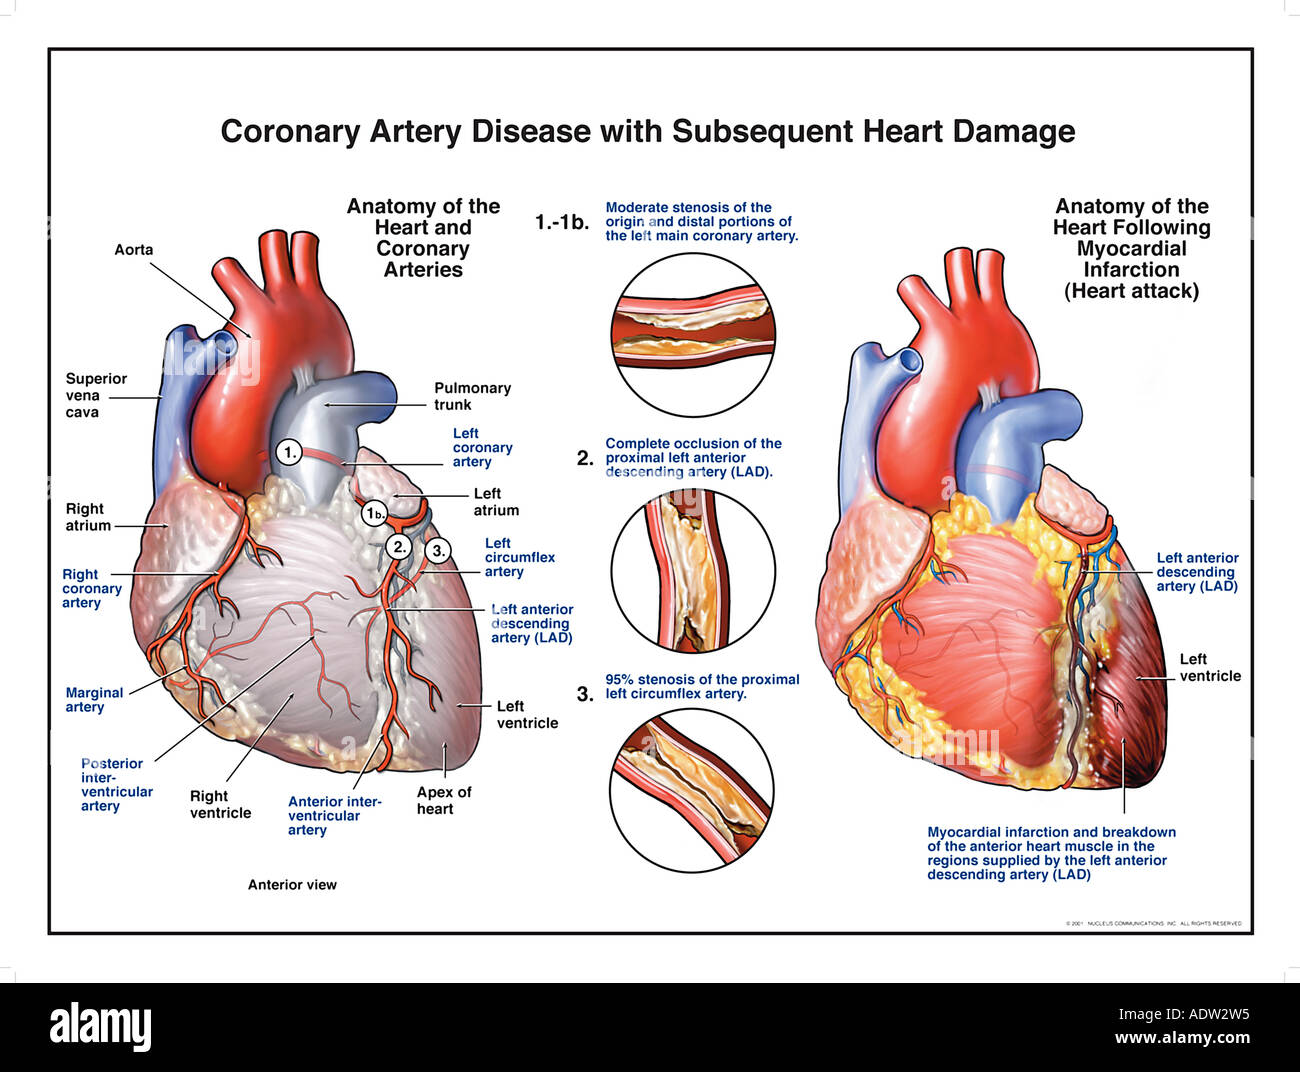 Coronary Artery Disease with Subsequent Heart Damage Stock Photo ...